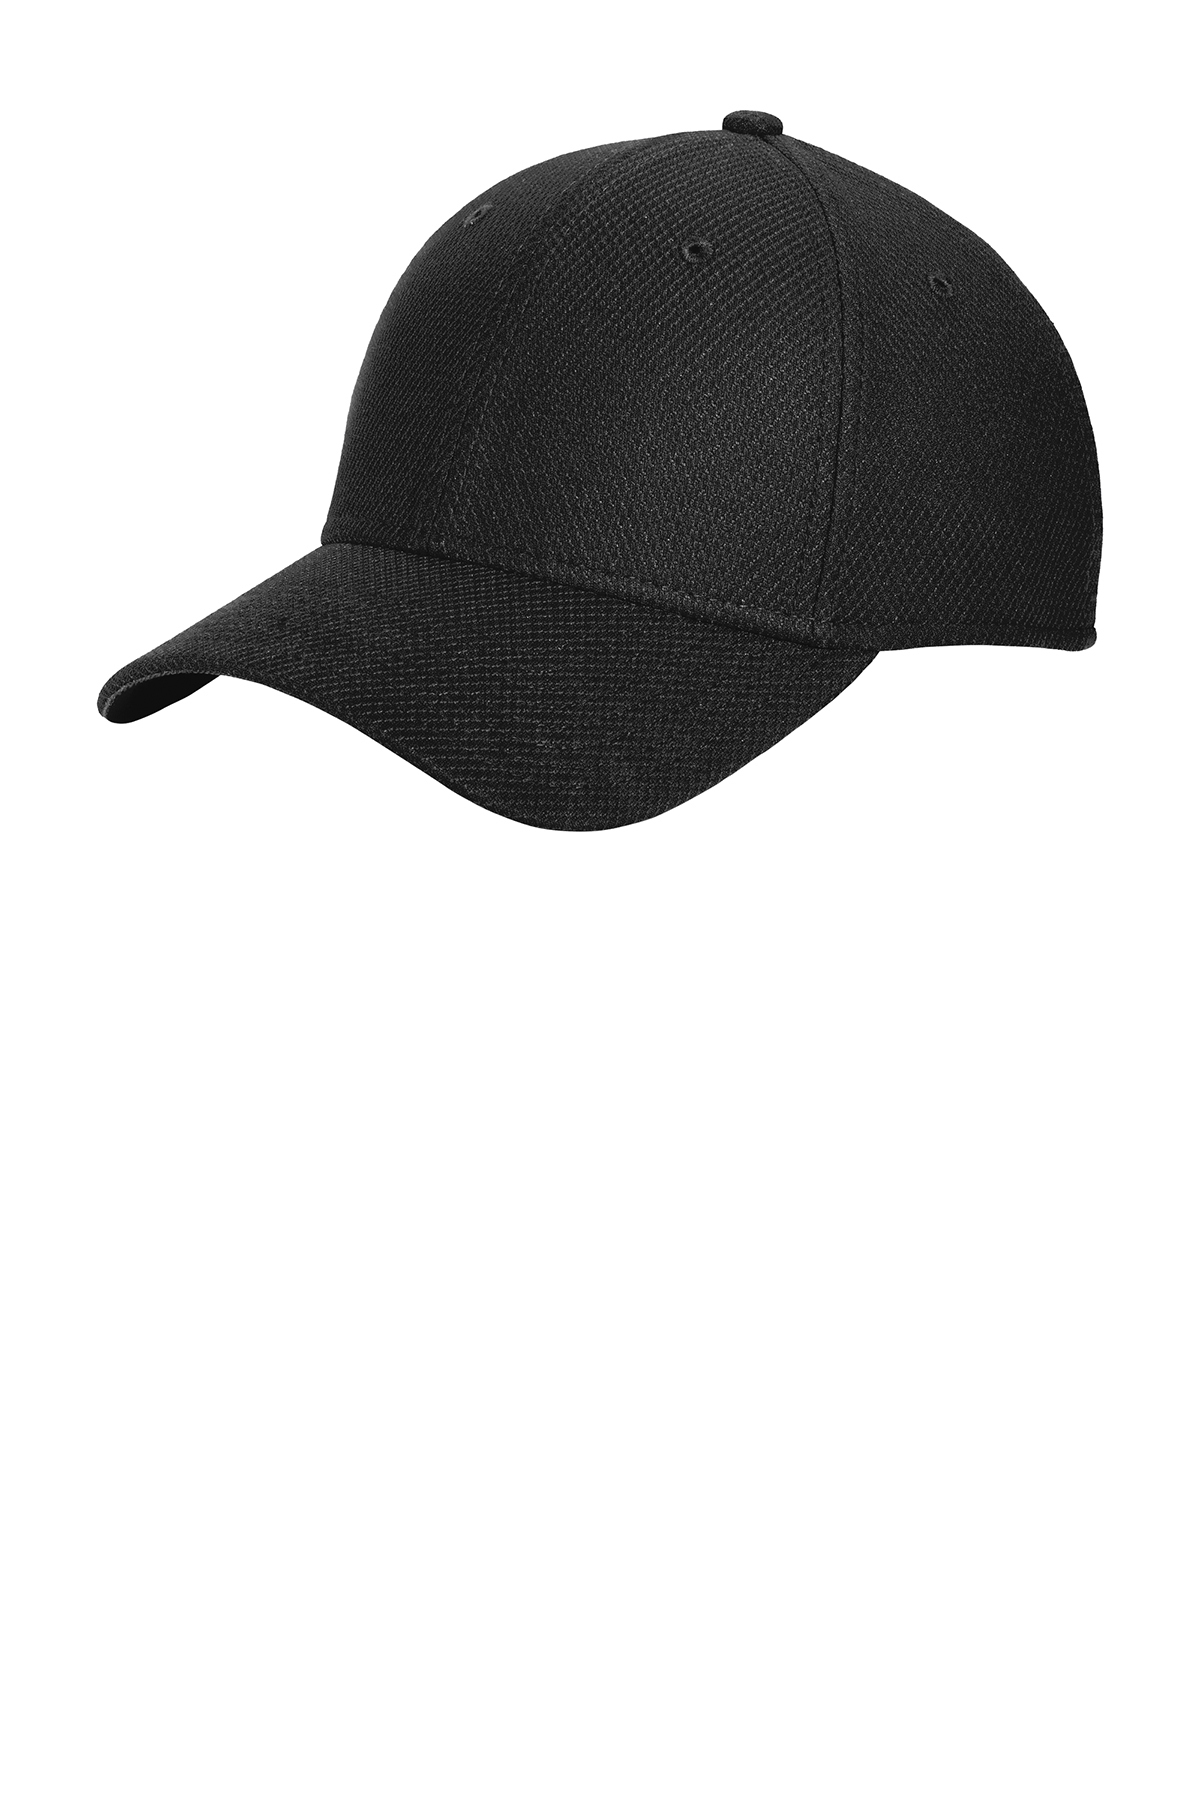 New Era NE1121 - Diamond Era Stretch Cap